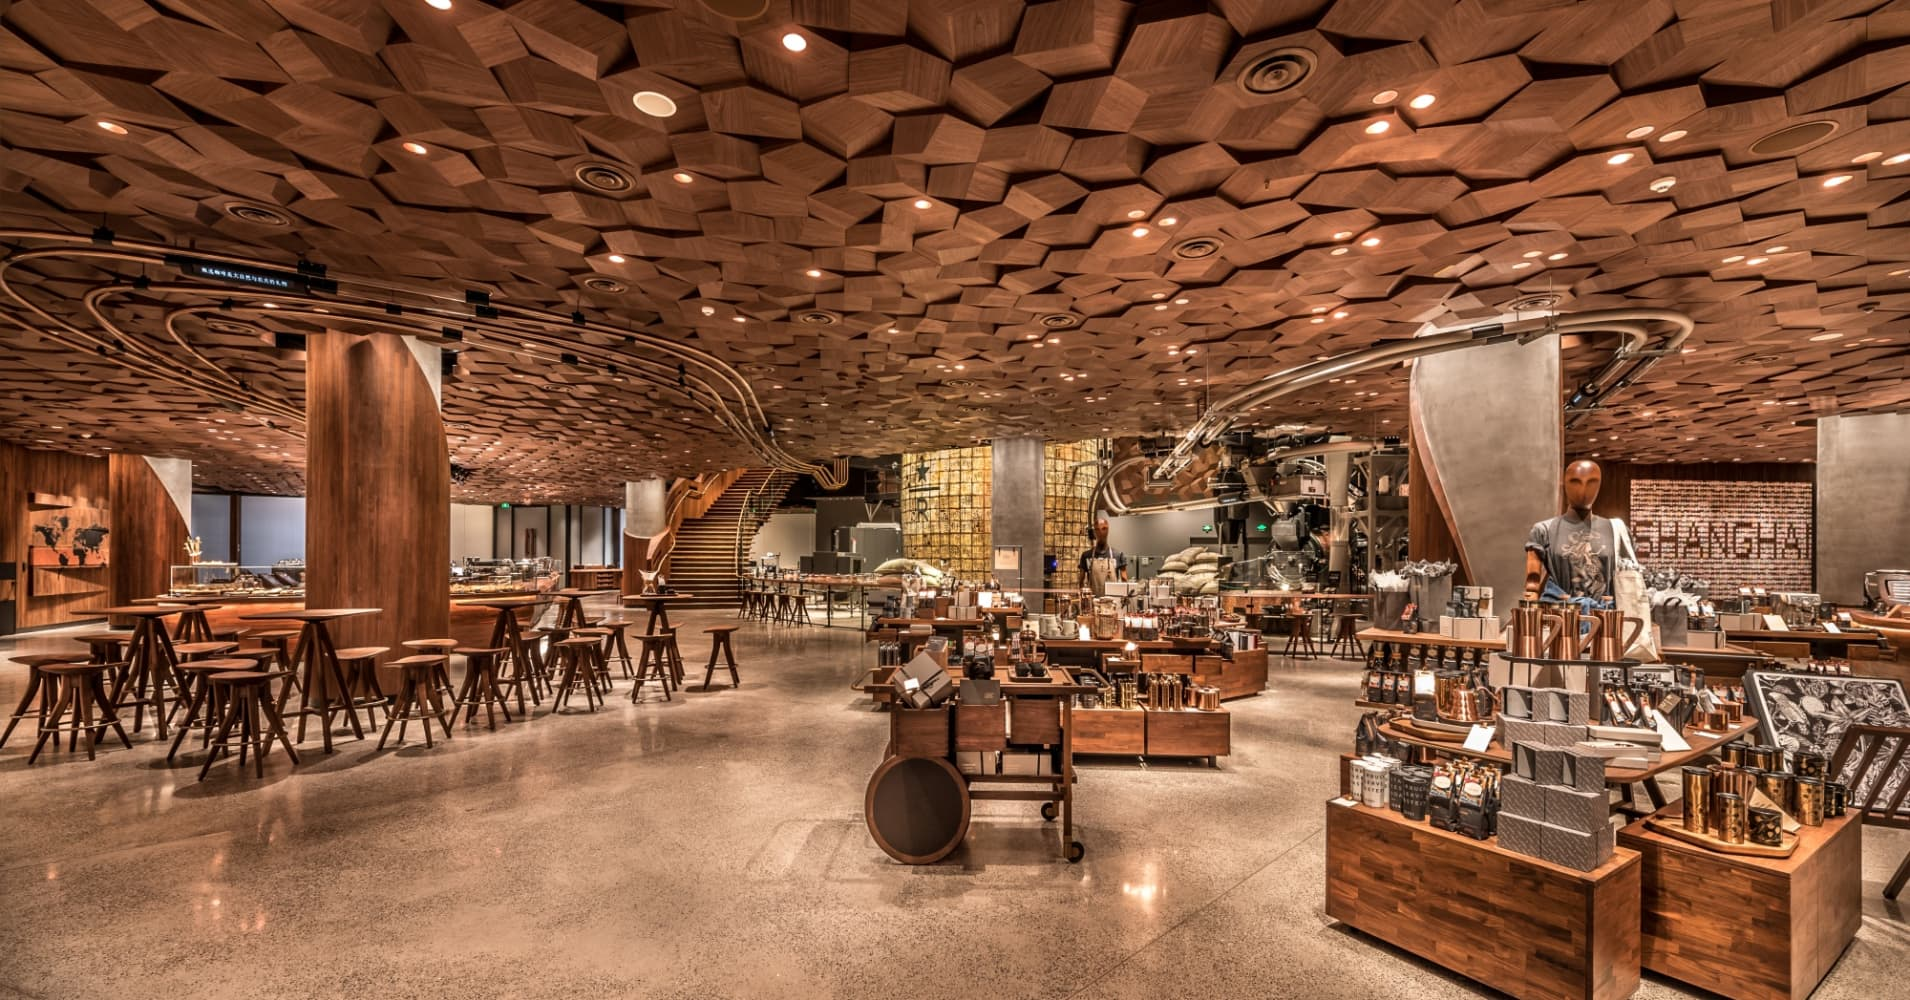 The interior of Starbucks' new Shanghai Roastery